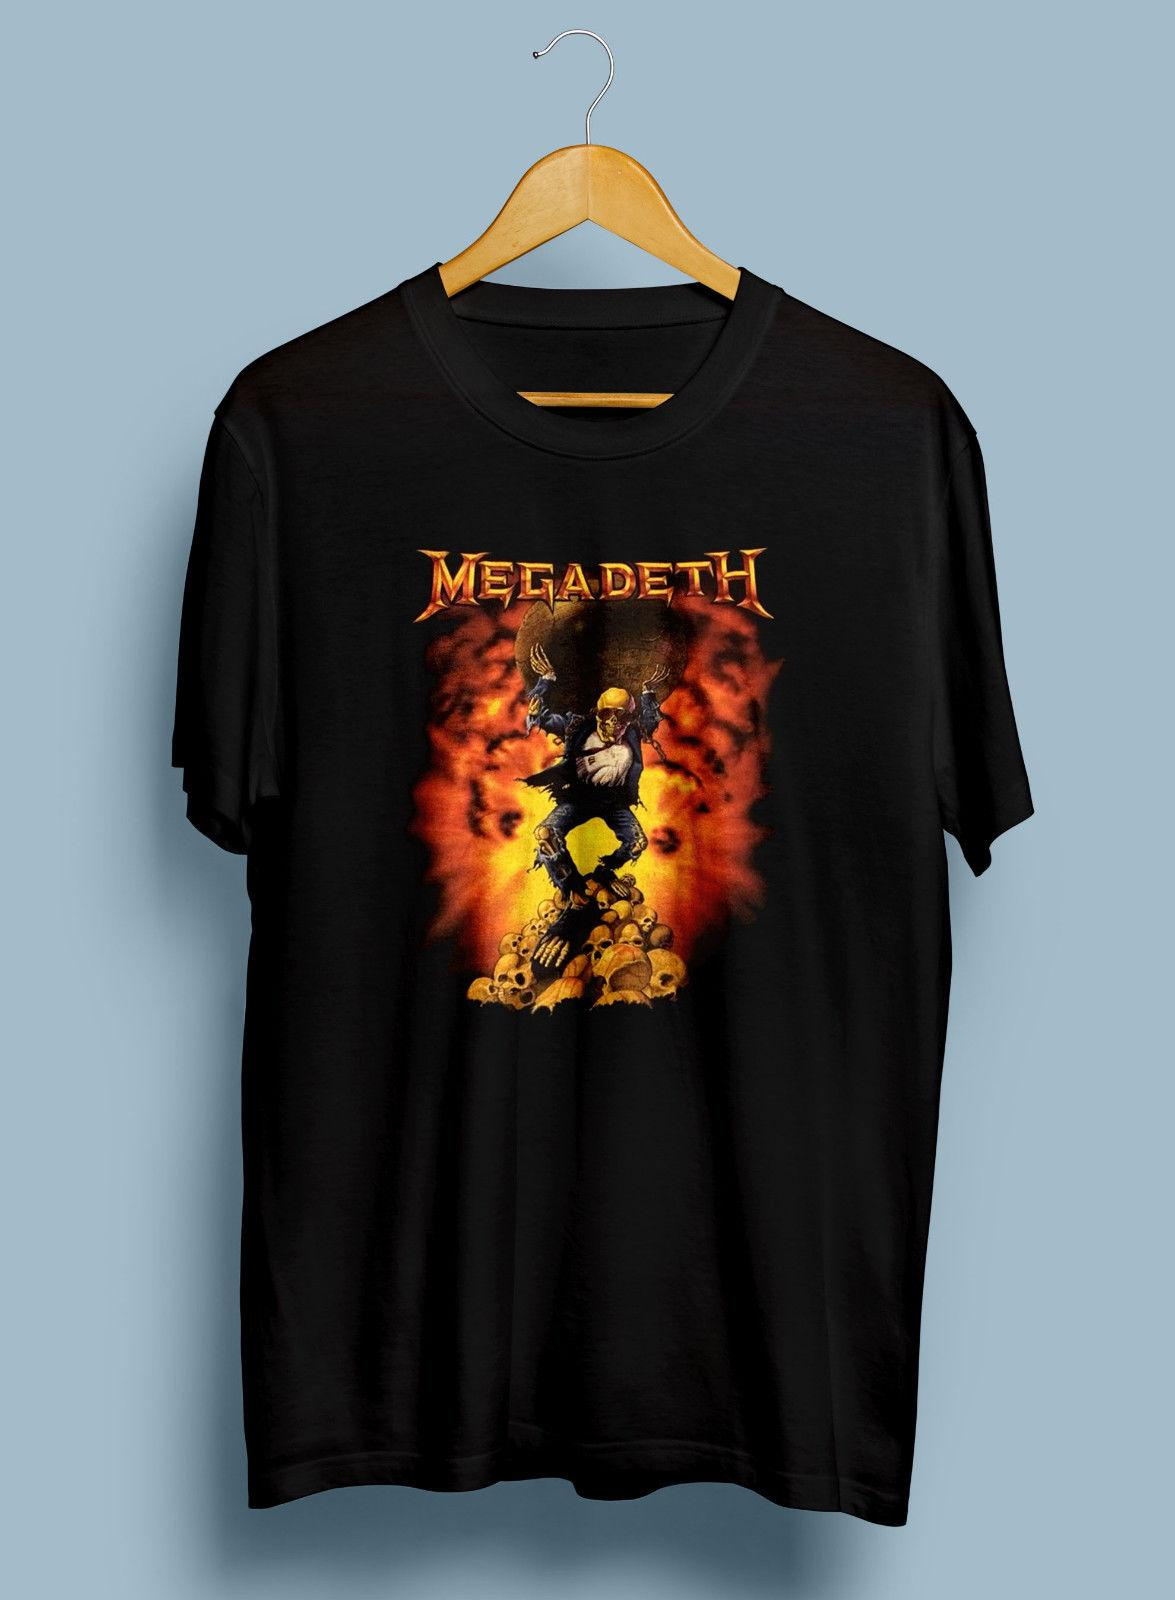 7acefc0a6 Very Rare Vintage Megadeth Genuine Oxidation Rust In Peace 1991 T Shirt Men  Women Unisex Fashion Tshirt Black Black Shirts Long Sleeve Shirt From ...